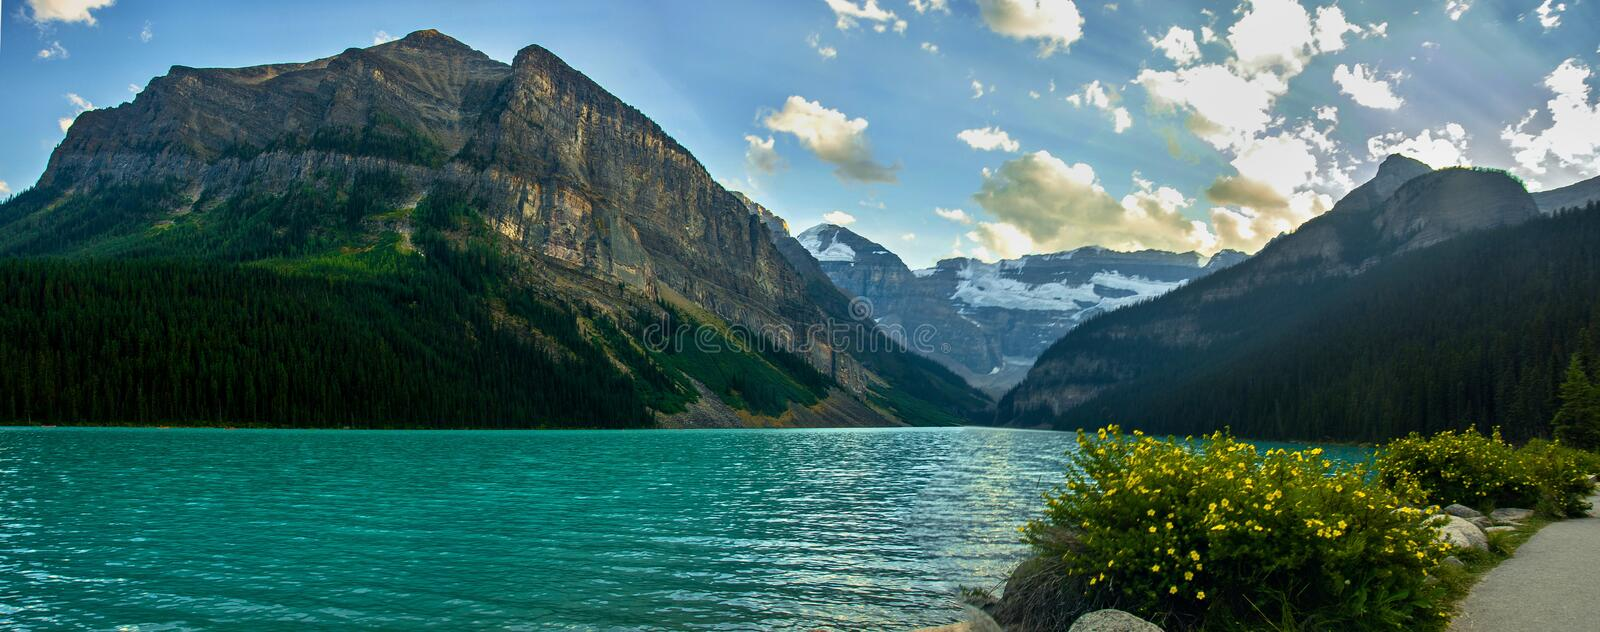 Idyllic atmosphere on the way around Lake Louise in Banff, in the Rocky Mountains, Banff National Park, Alberta, Canada. Relax, explore, do whatever you want stock photo